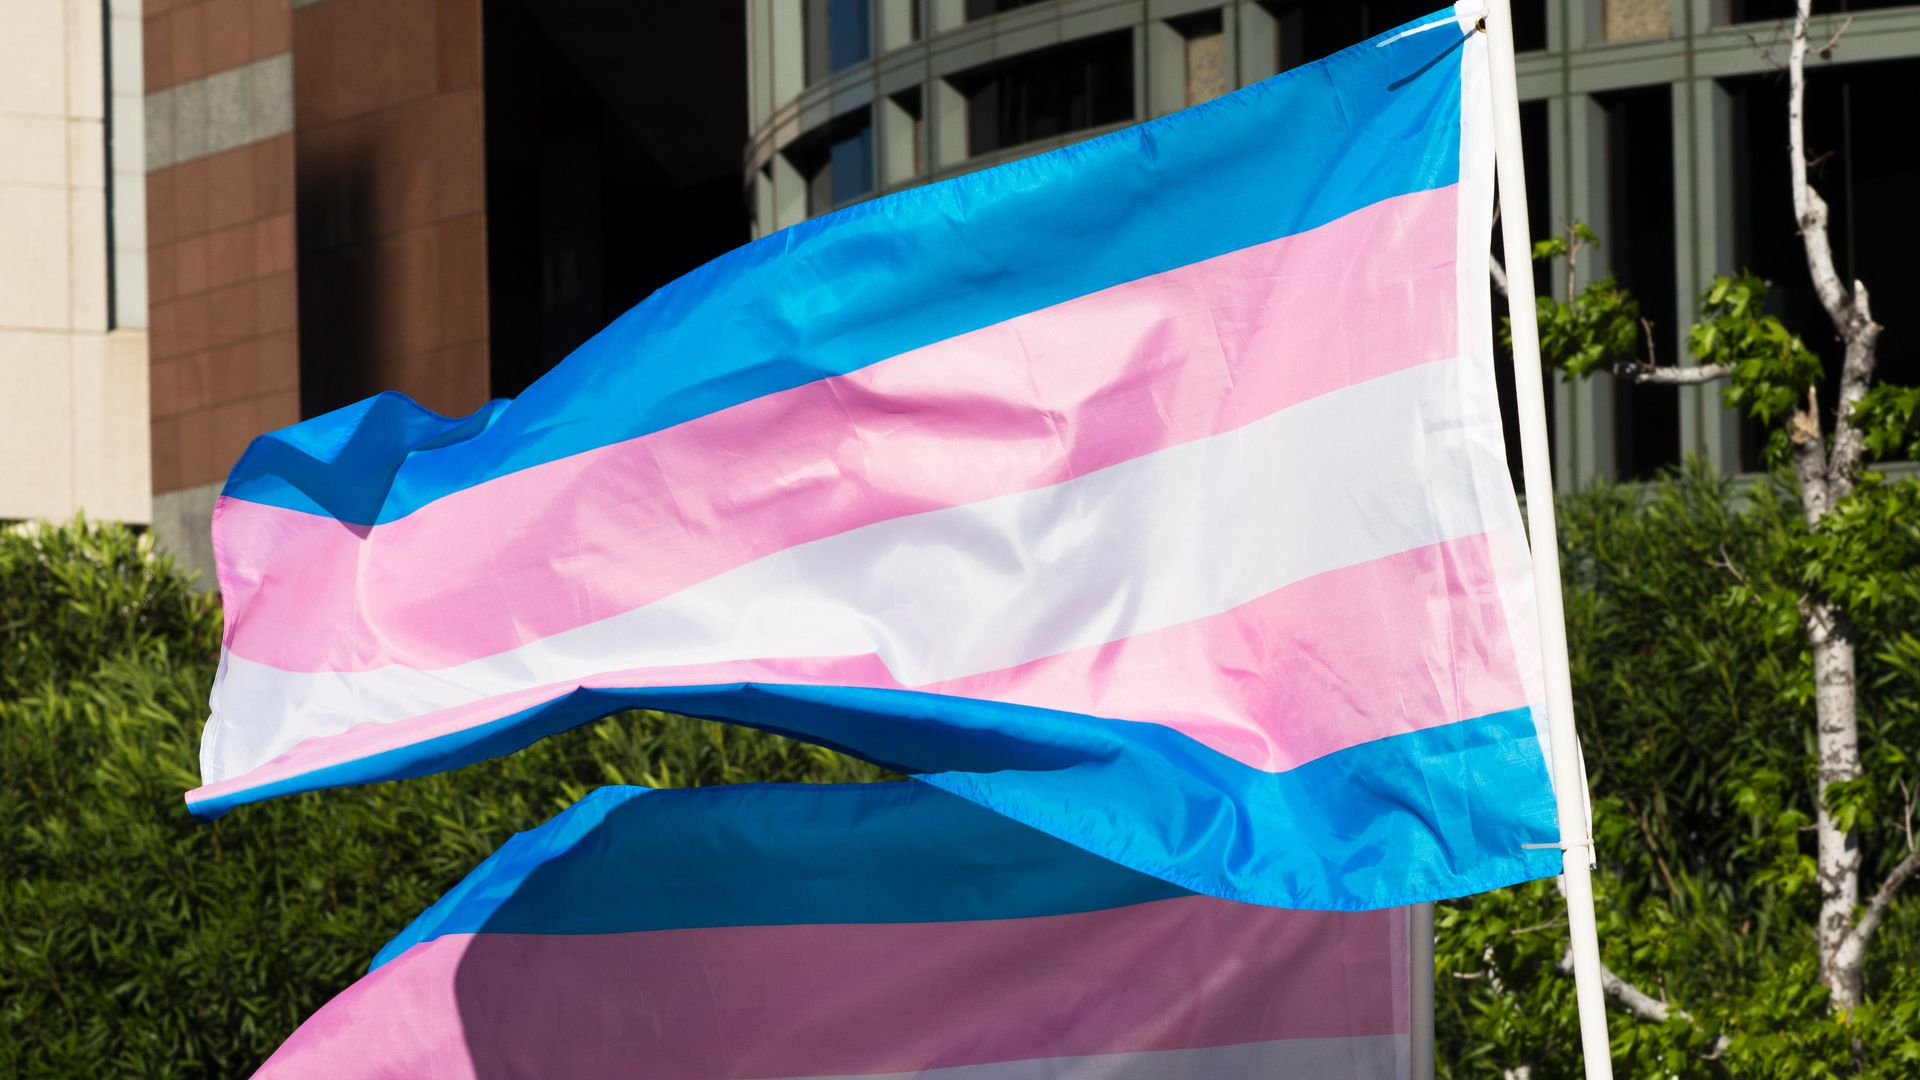 Two trans flags wave in this picture.